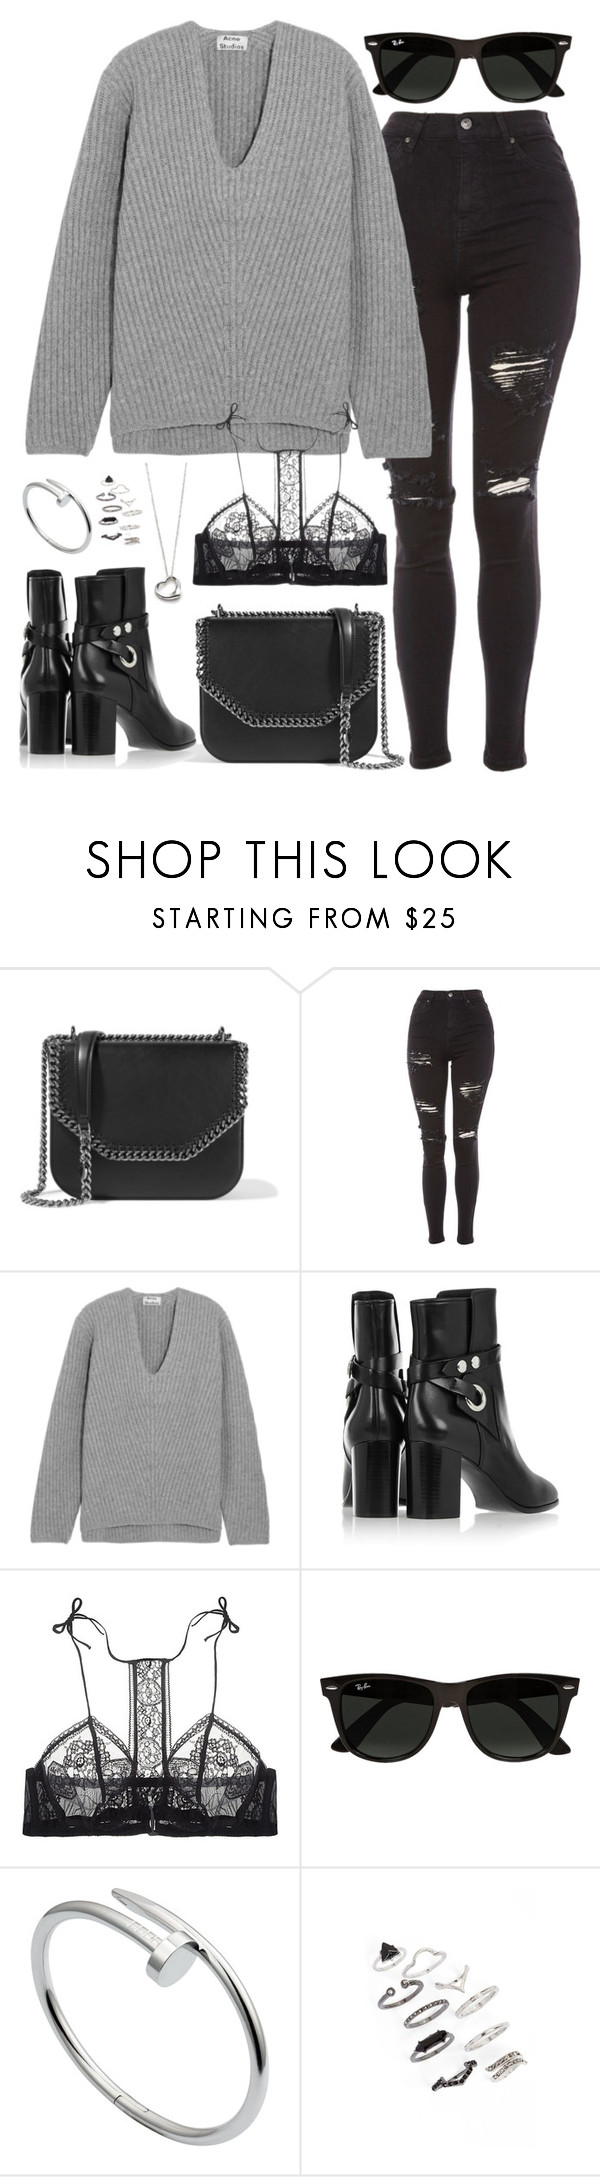 """""""Untitled #3011"""" by briarachele on Polyvore featuring STELLA McCARTNEY, Topshop, Acne Studios, Isabel Marant, La Perla, Ray-Ban, Elsa Peretti and Cartier"""